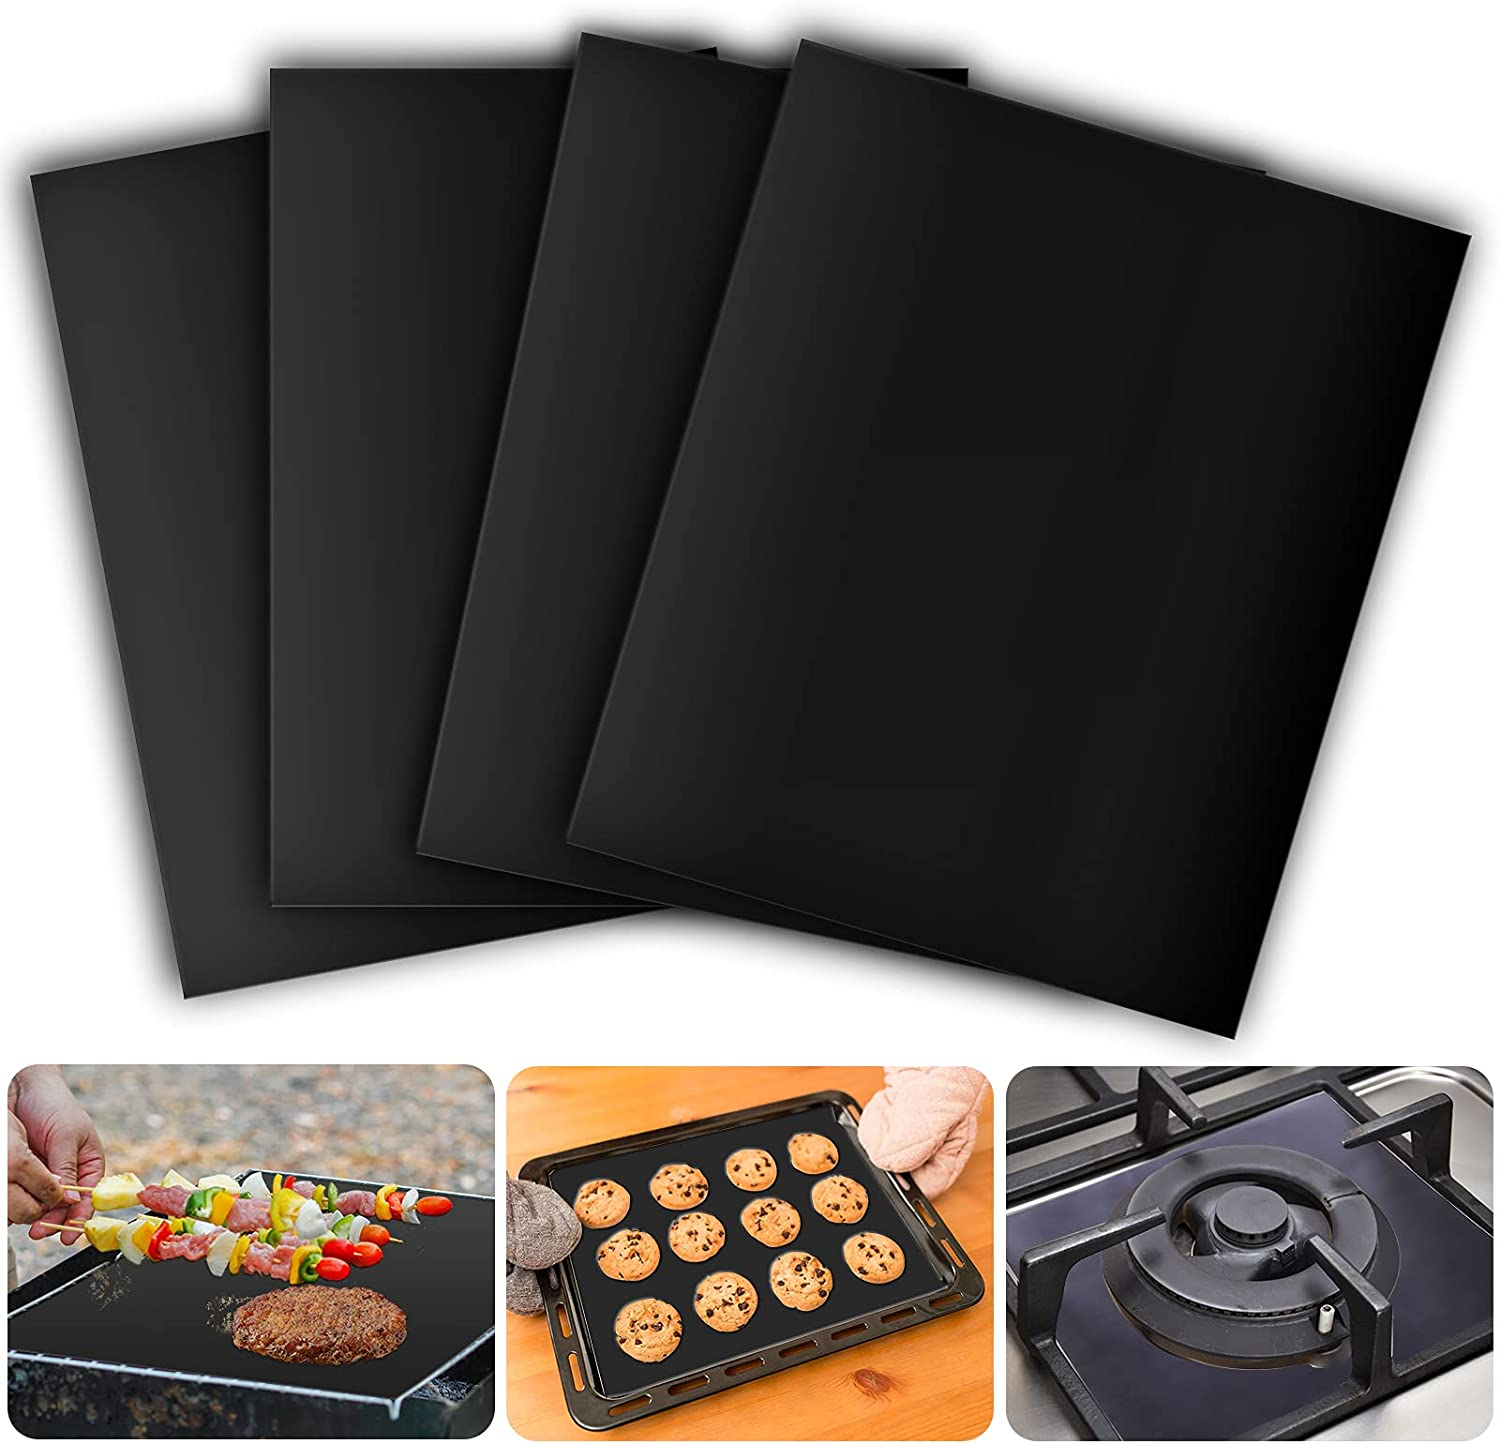 4 Pack Oven Liners for Bottom of Electric Oven, Gas, Toaster & Microwave Ovens, 500 Degree Reusable Oven Protector Liner, Extra Thick/Heavy Duty/Easy to Clean Non stick Oven Mat